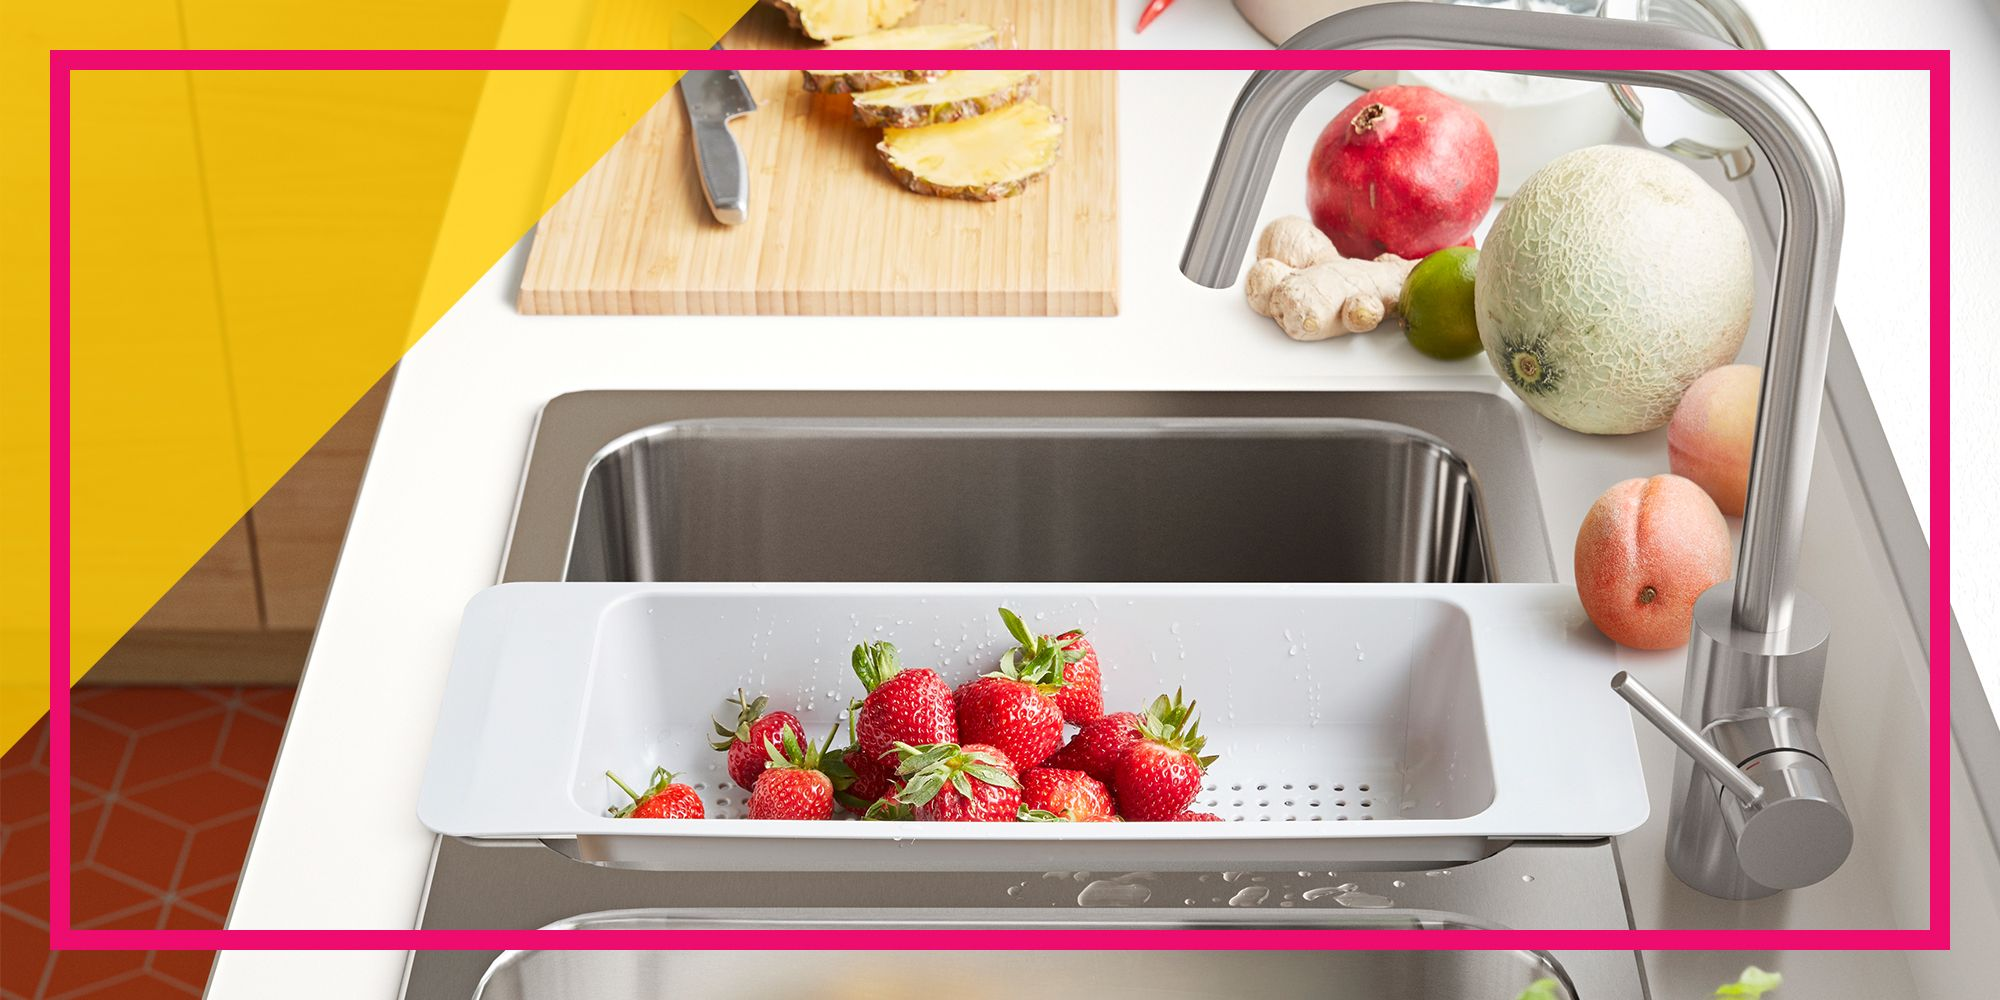 IKEA Kitchen Inspiration: What to Know Before Buying a New Sink